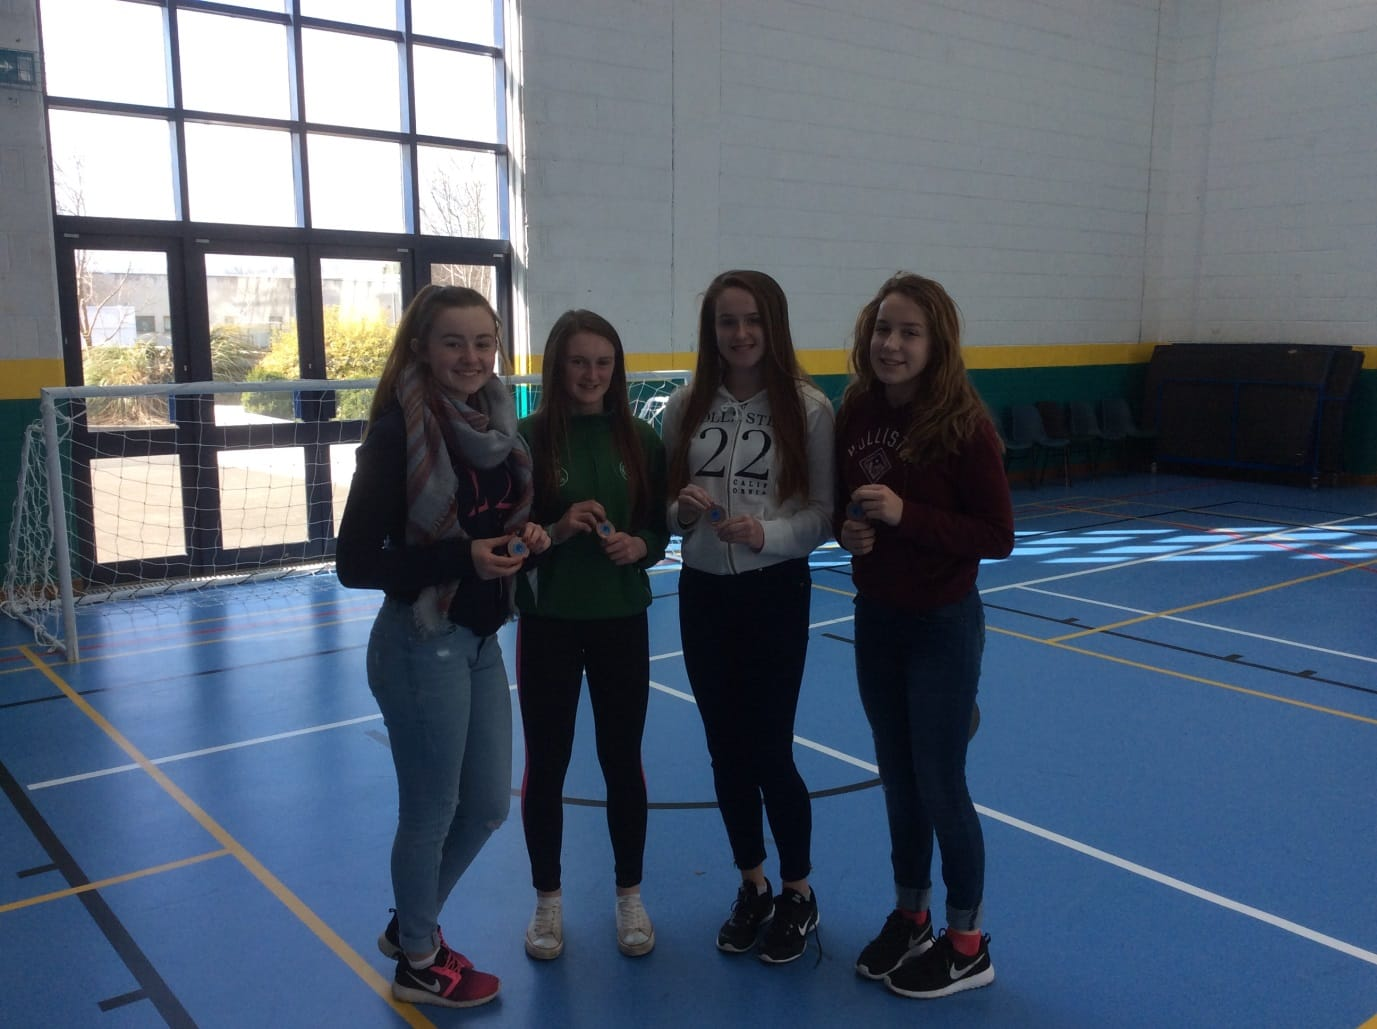 April 2016: Desmond College Students win Bronze in Munster Orienteering Schools Championship